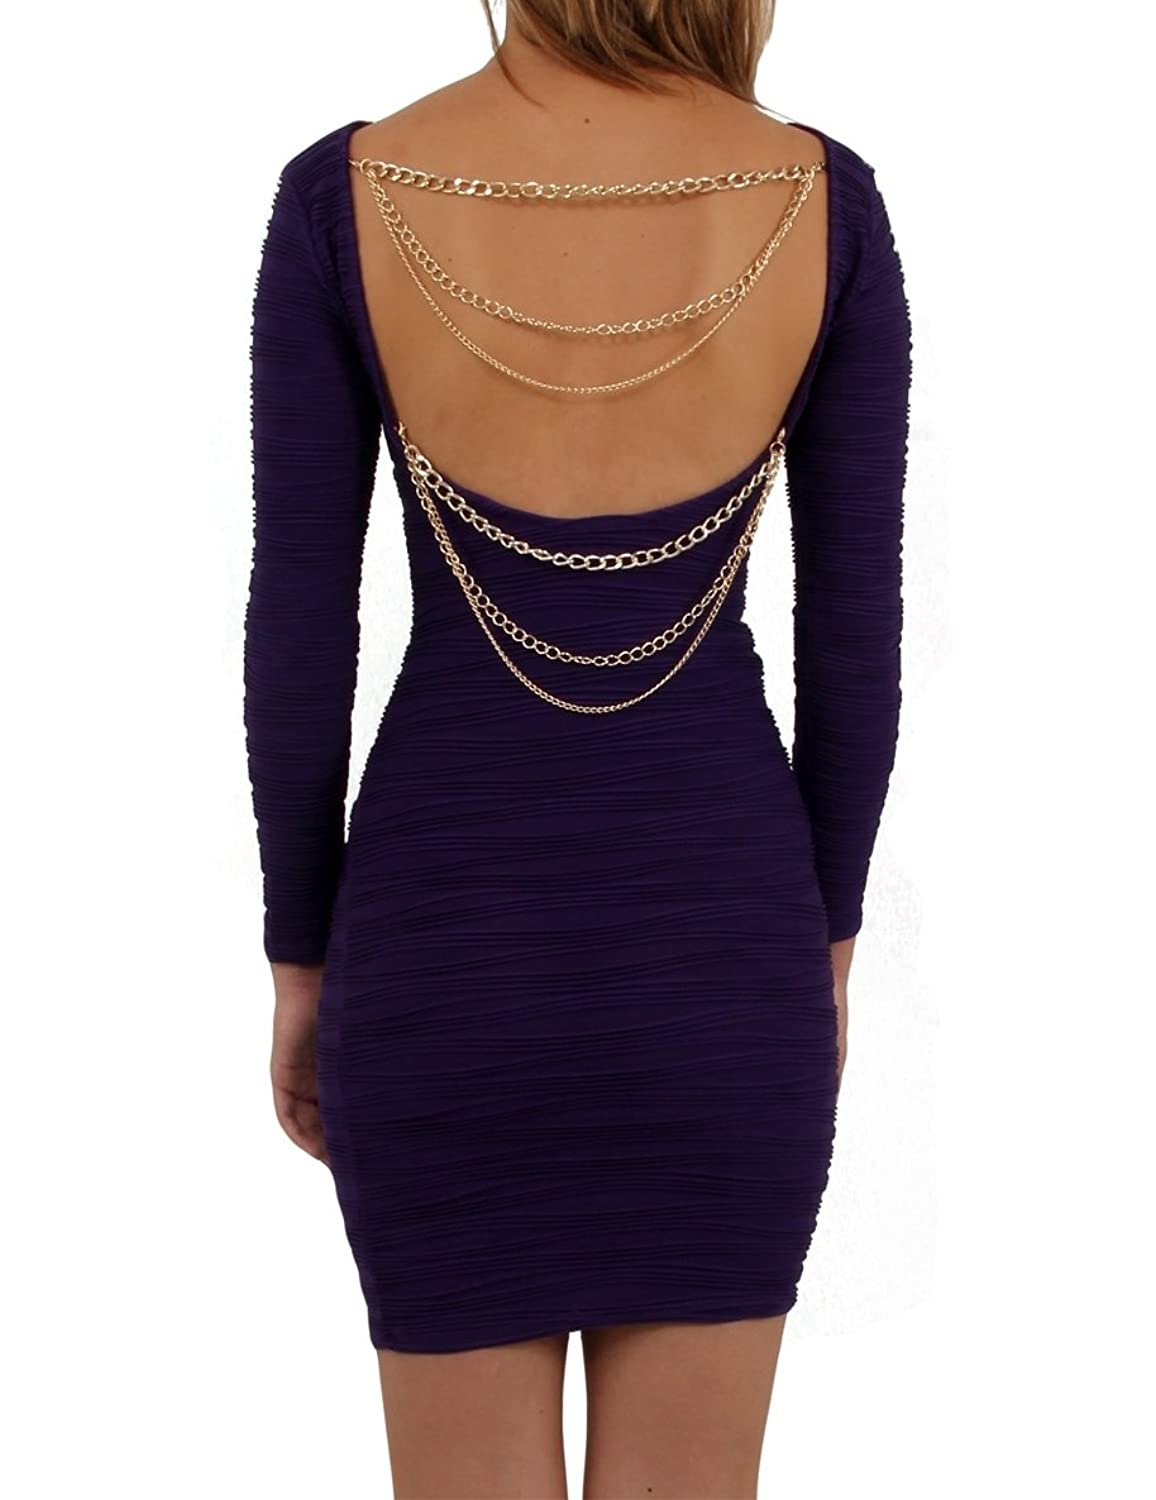 Ladies Purple Dress Backless Bodycon Clubbing Mini Short stretchy Chain party Mauve Violet